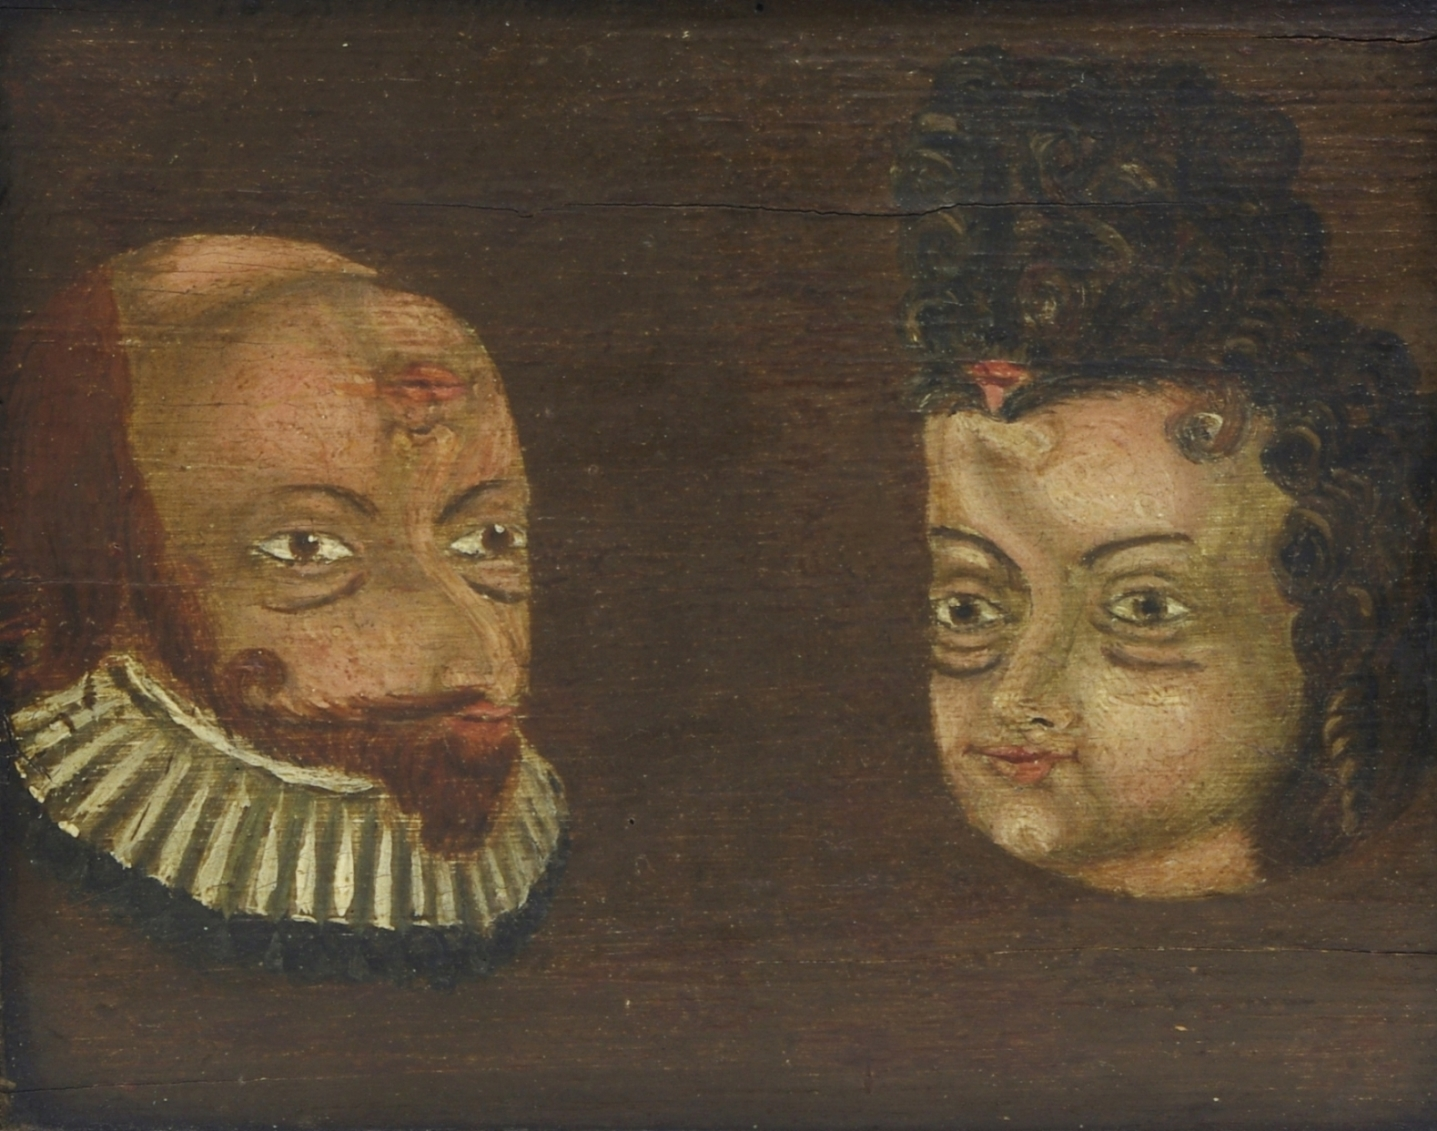 Folk Art Trompe l'Oeil Double Portrait, c. 1780-90